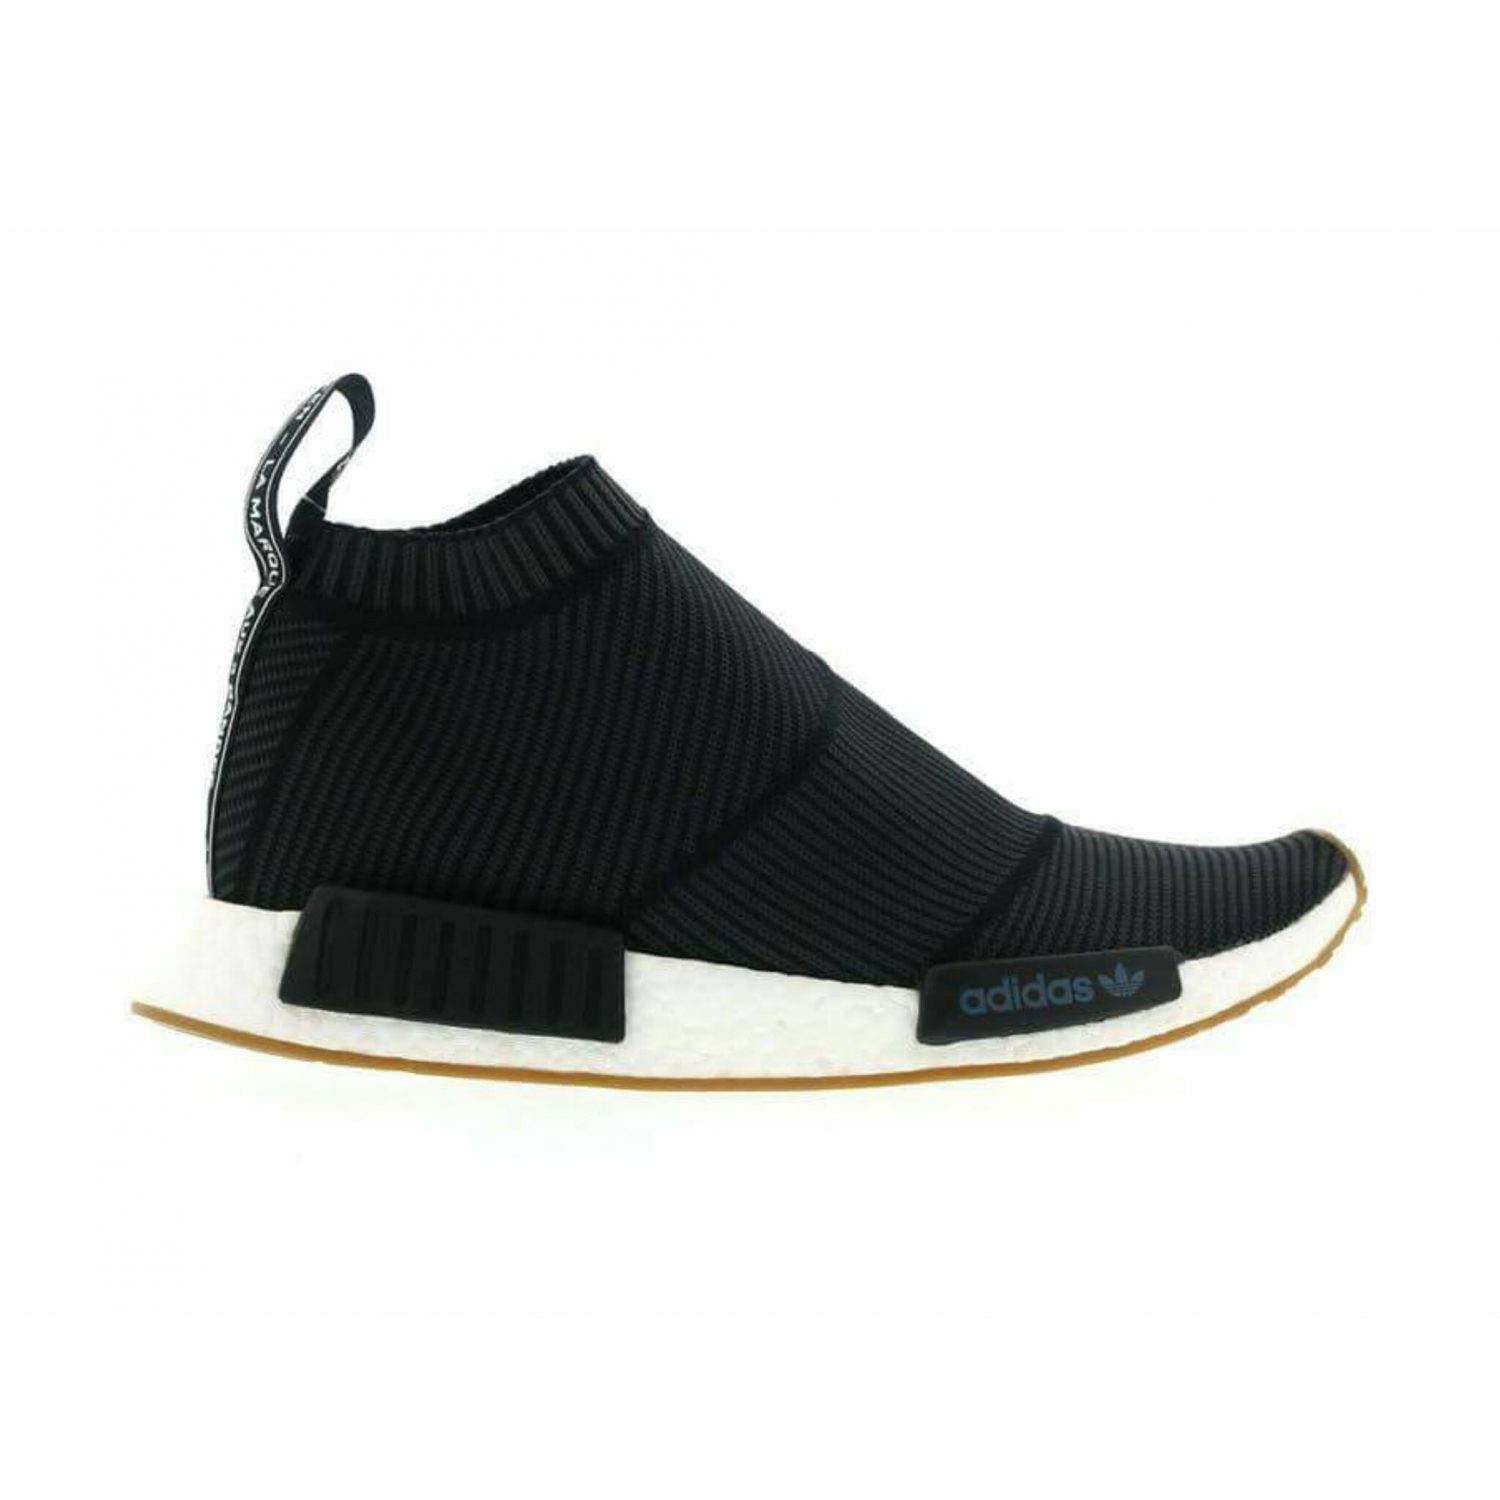 NMD City Sock For Women Shoes Online Shopping in Pakistan